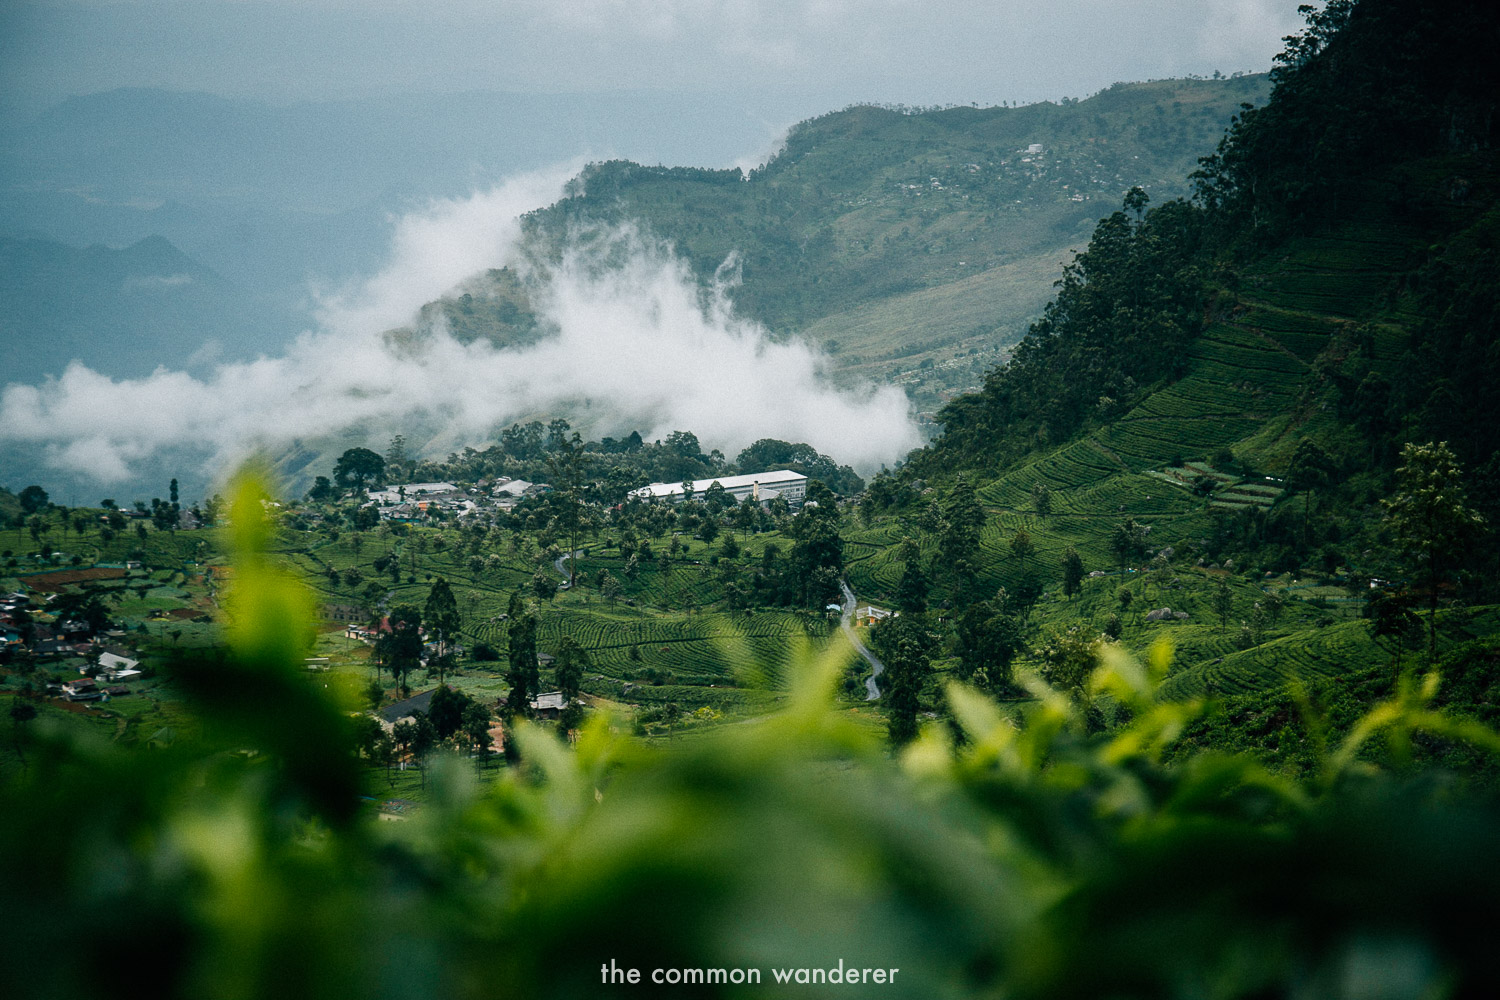 Views overlooking Dambethenne tea factory, Haputale Sri Lanka